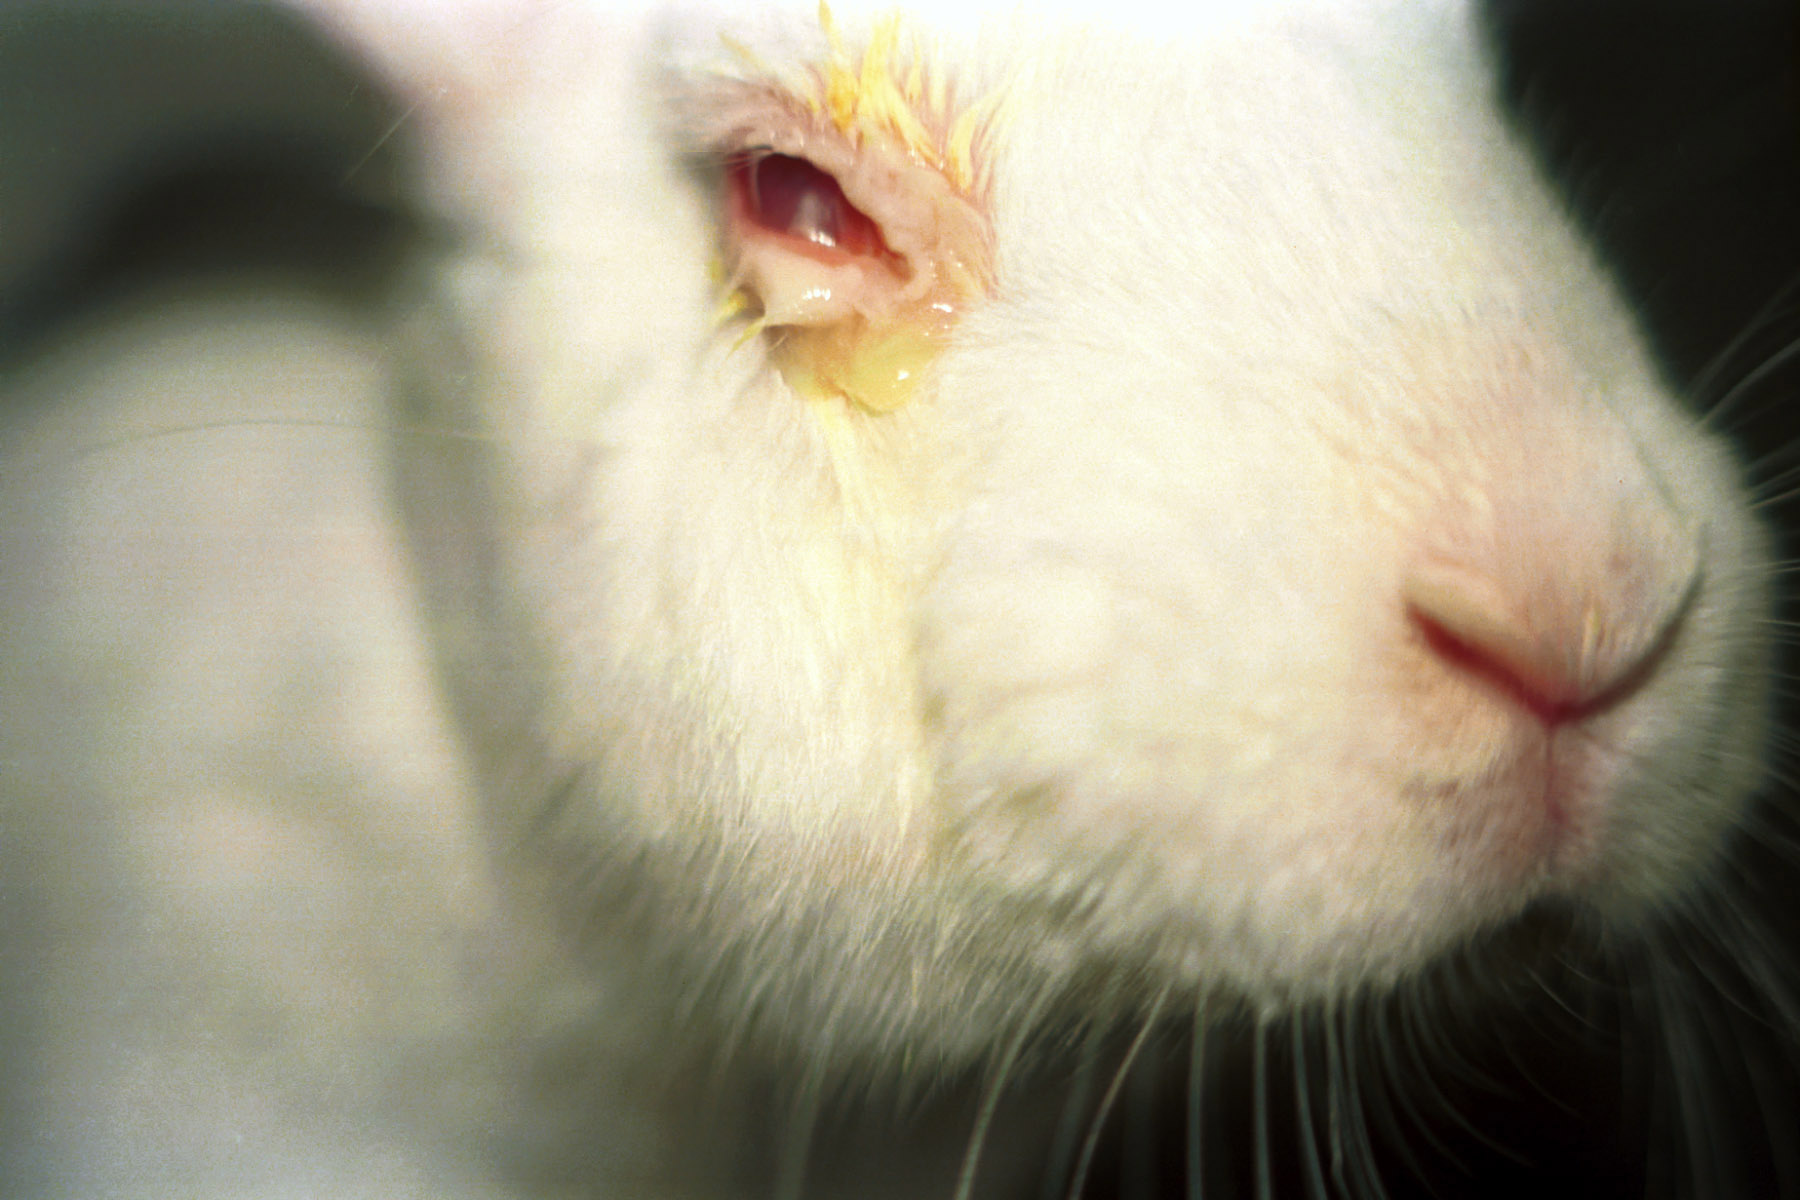 should animal testing be banned? by cloie anne